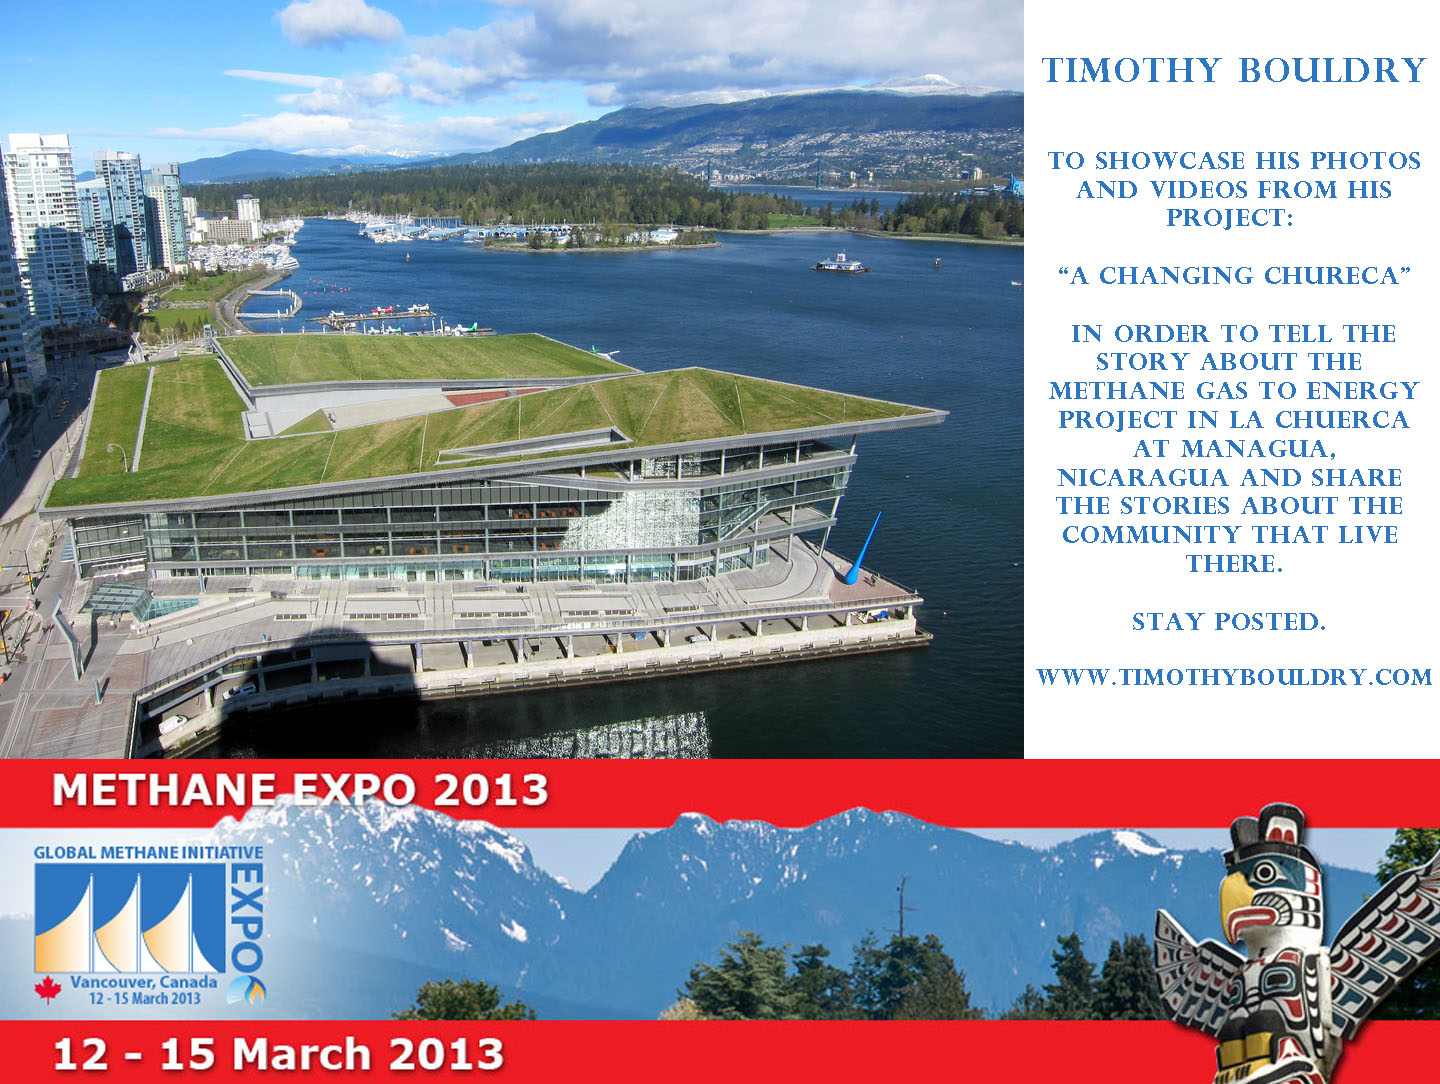 Photography and short films to exhibit at the 2013 Methane Expo at the Vancouver Convention Center.